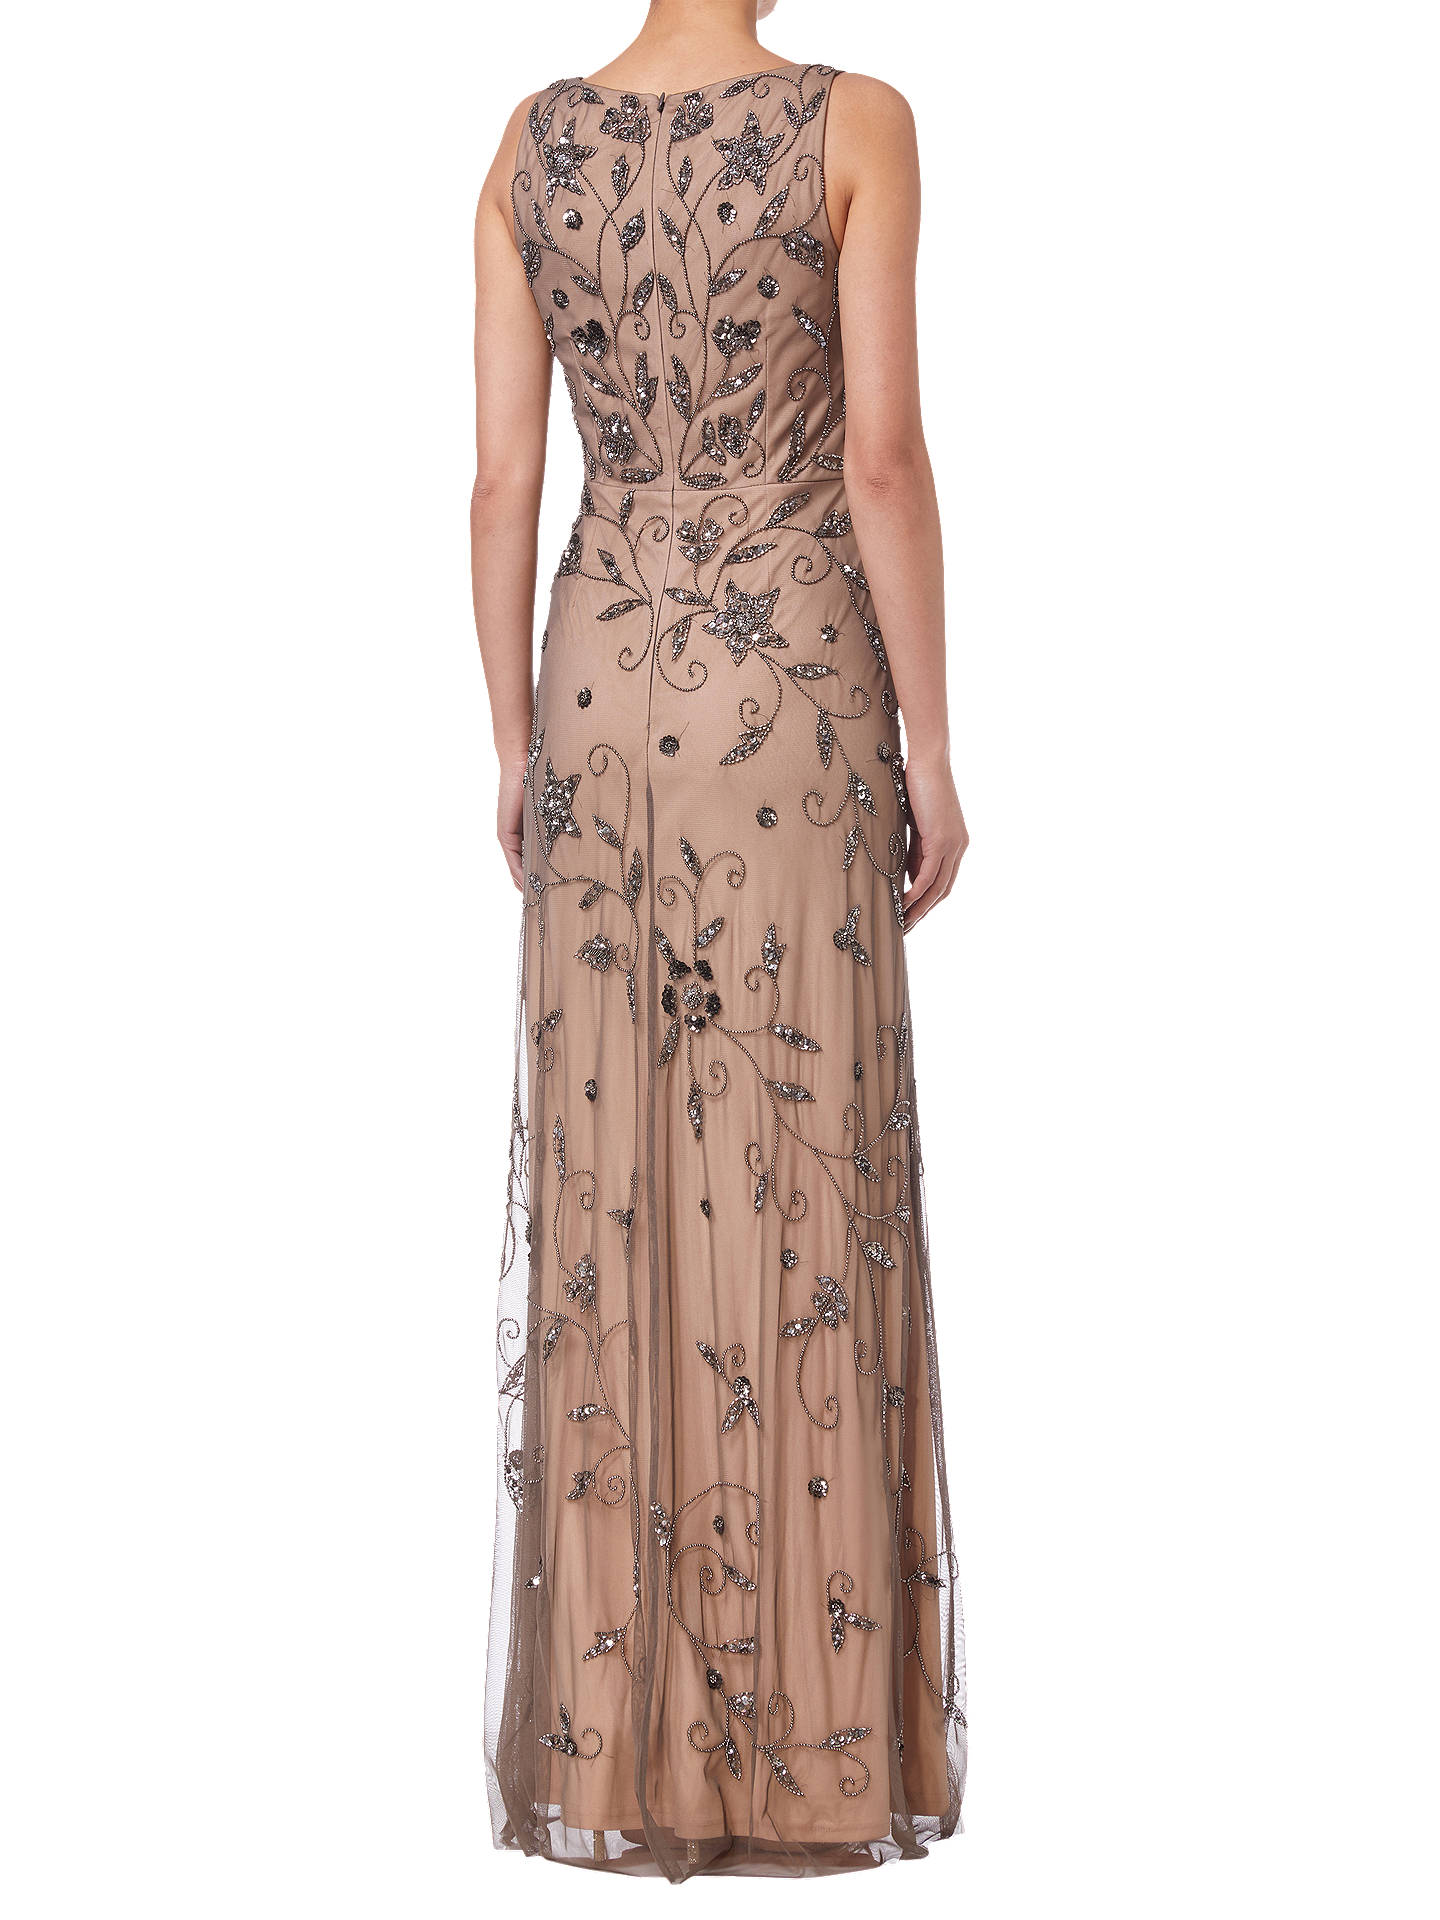 BuyAdrianna Papell Maxi Beaded Dress, Lead, 8 Online at johnlewis.com